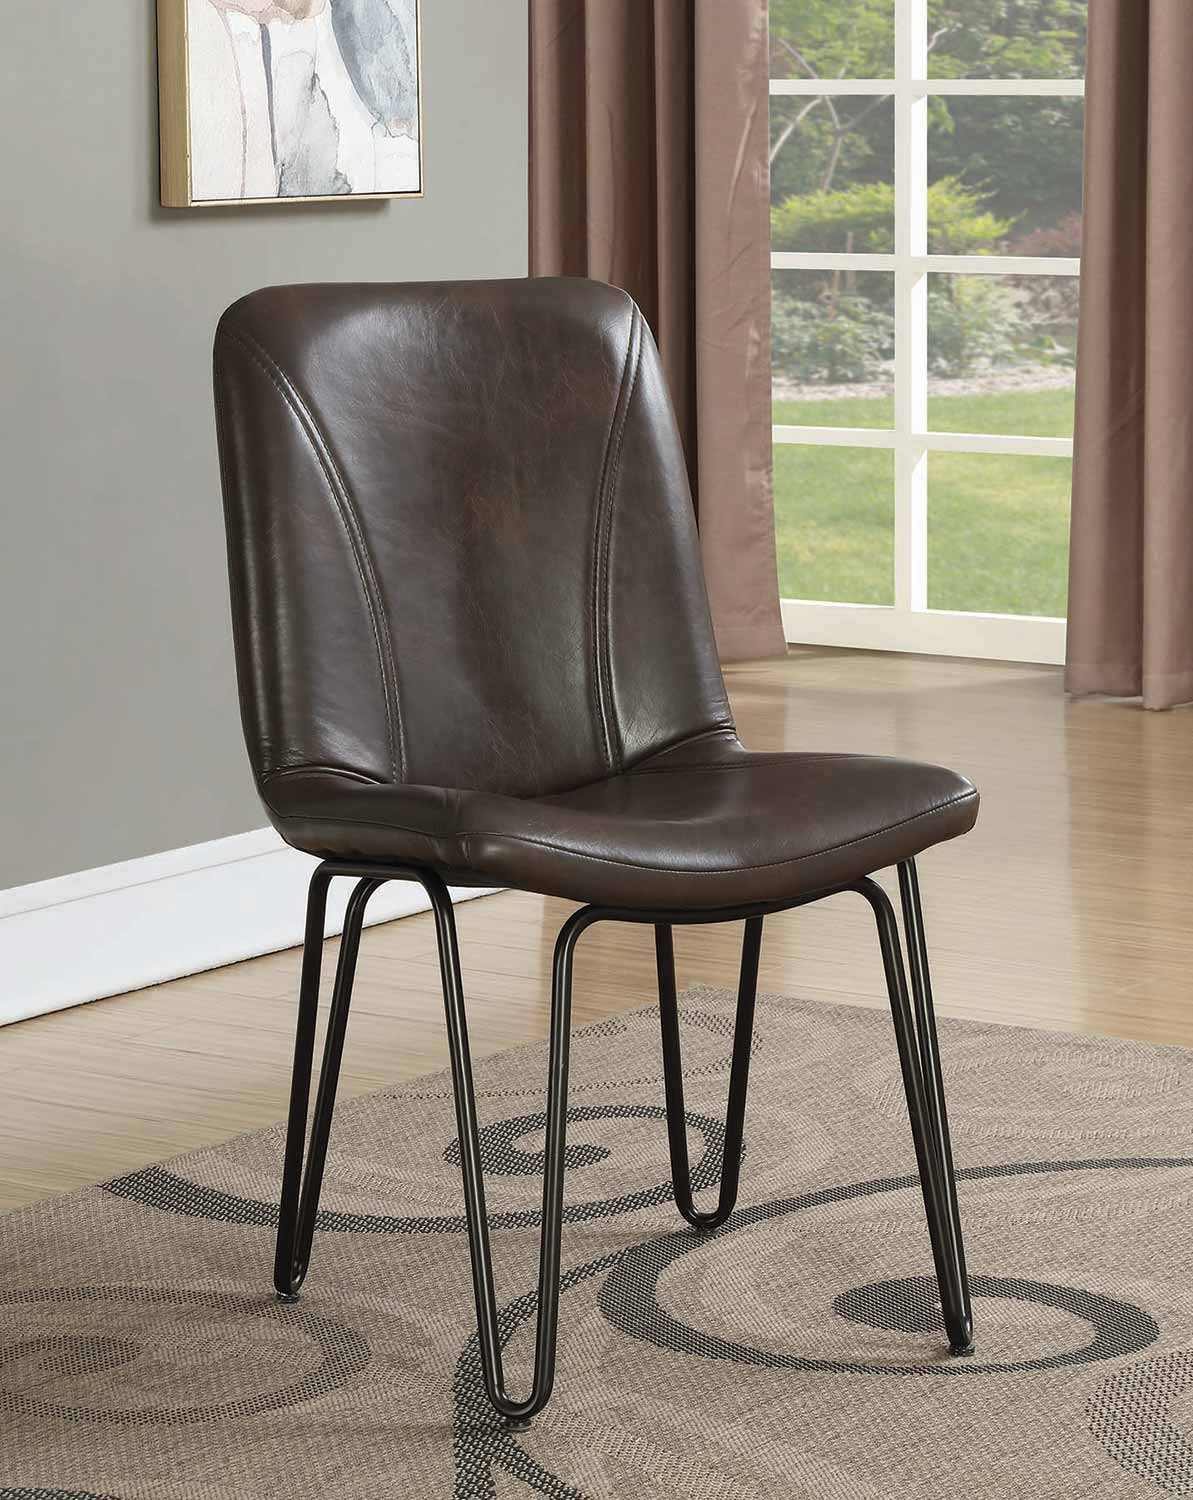 Coaster Chambler Dining Side Chair - Brown Leatherette